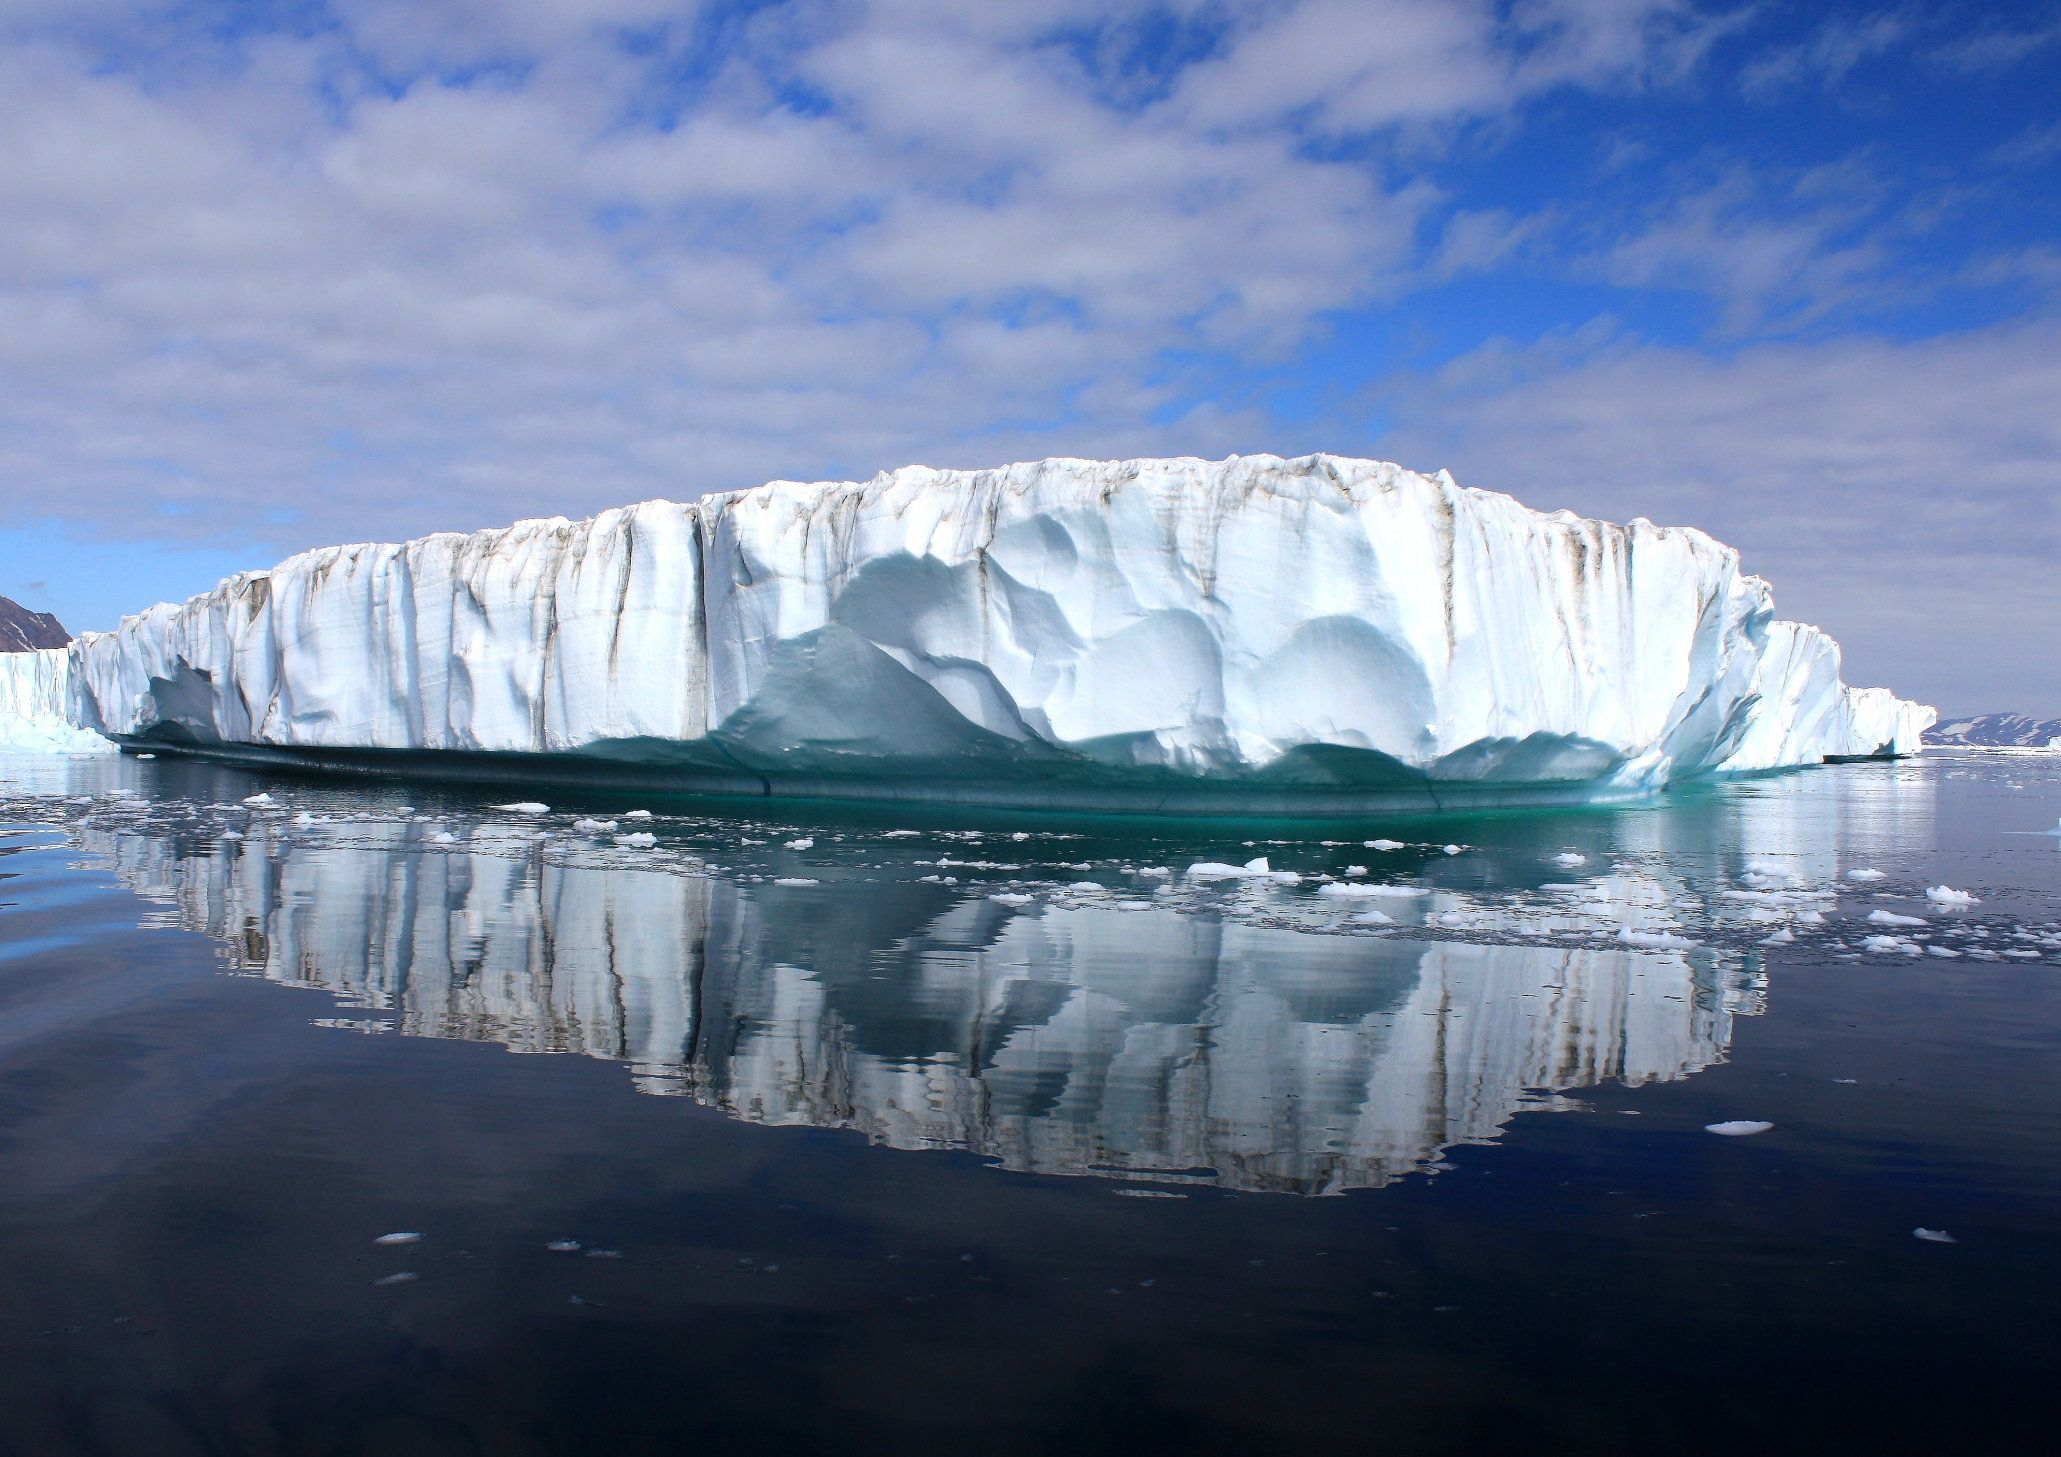 Clouds float above the east Greenland ice sheet and glaciers.